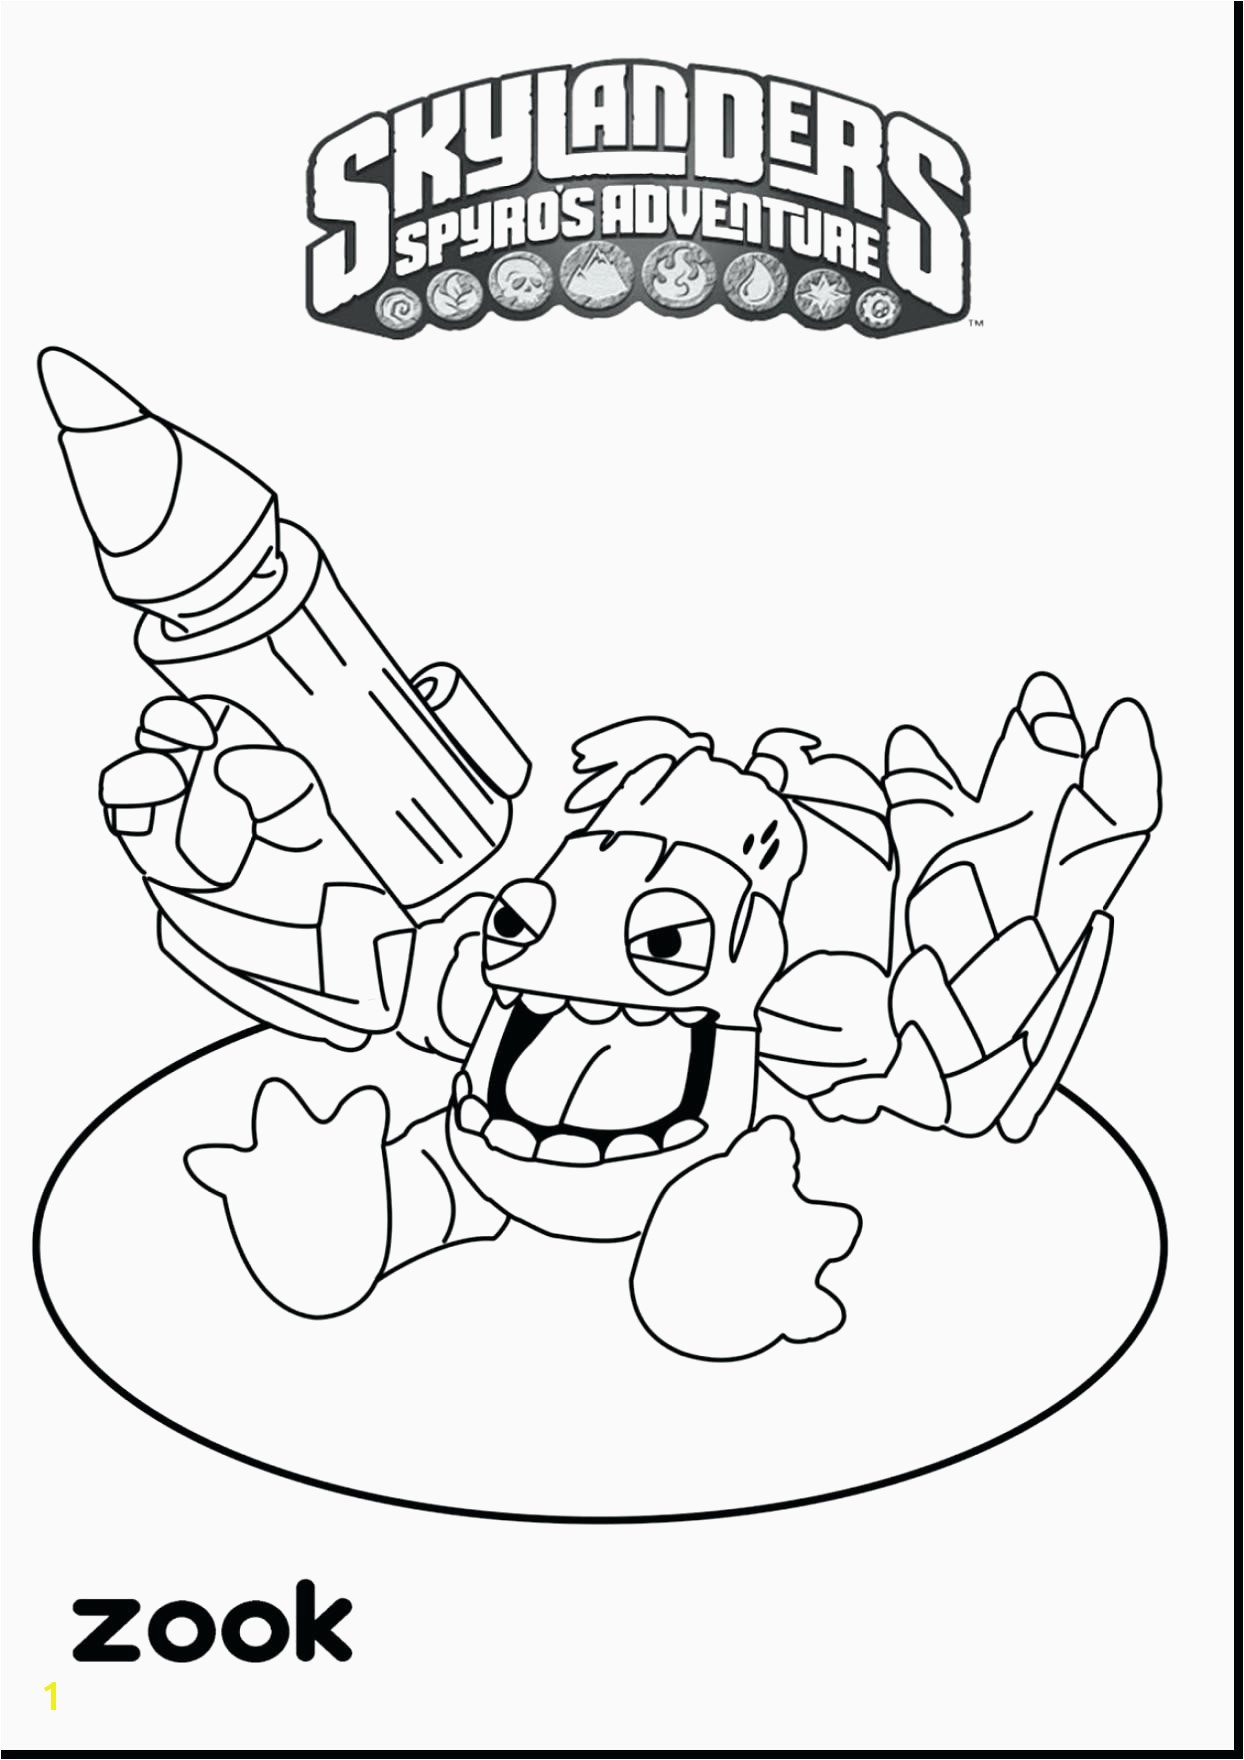 Awesome candy cane coloring sheet Gallery 6j Candy Cane Coloring Page Beautiful Awesome Coloring Skylander